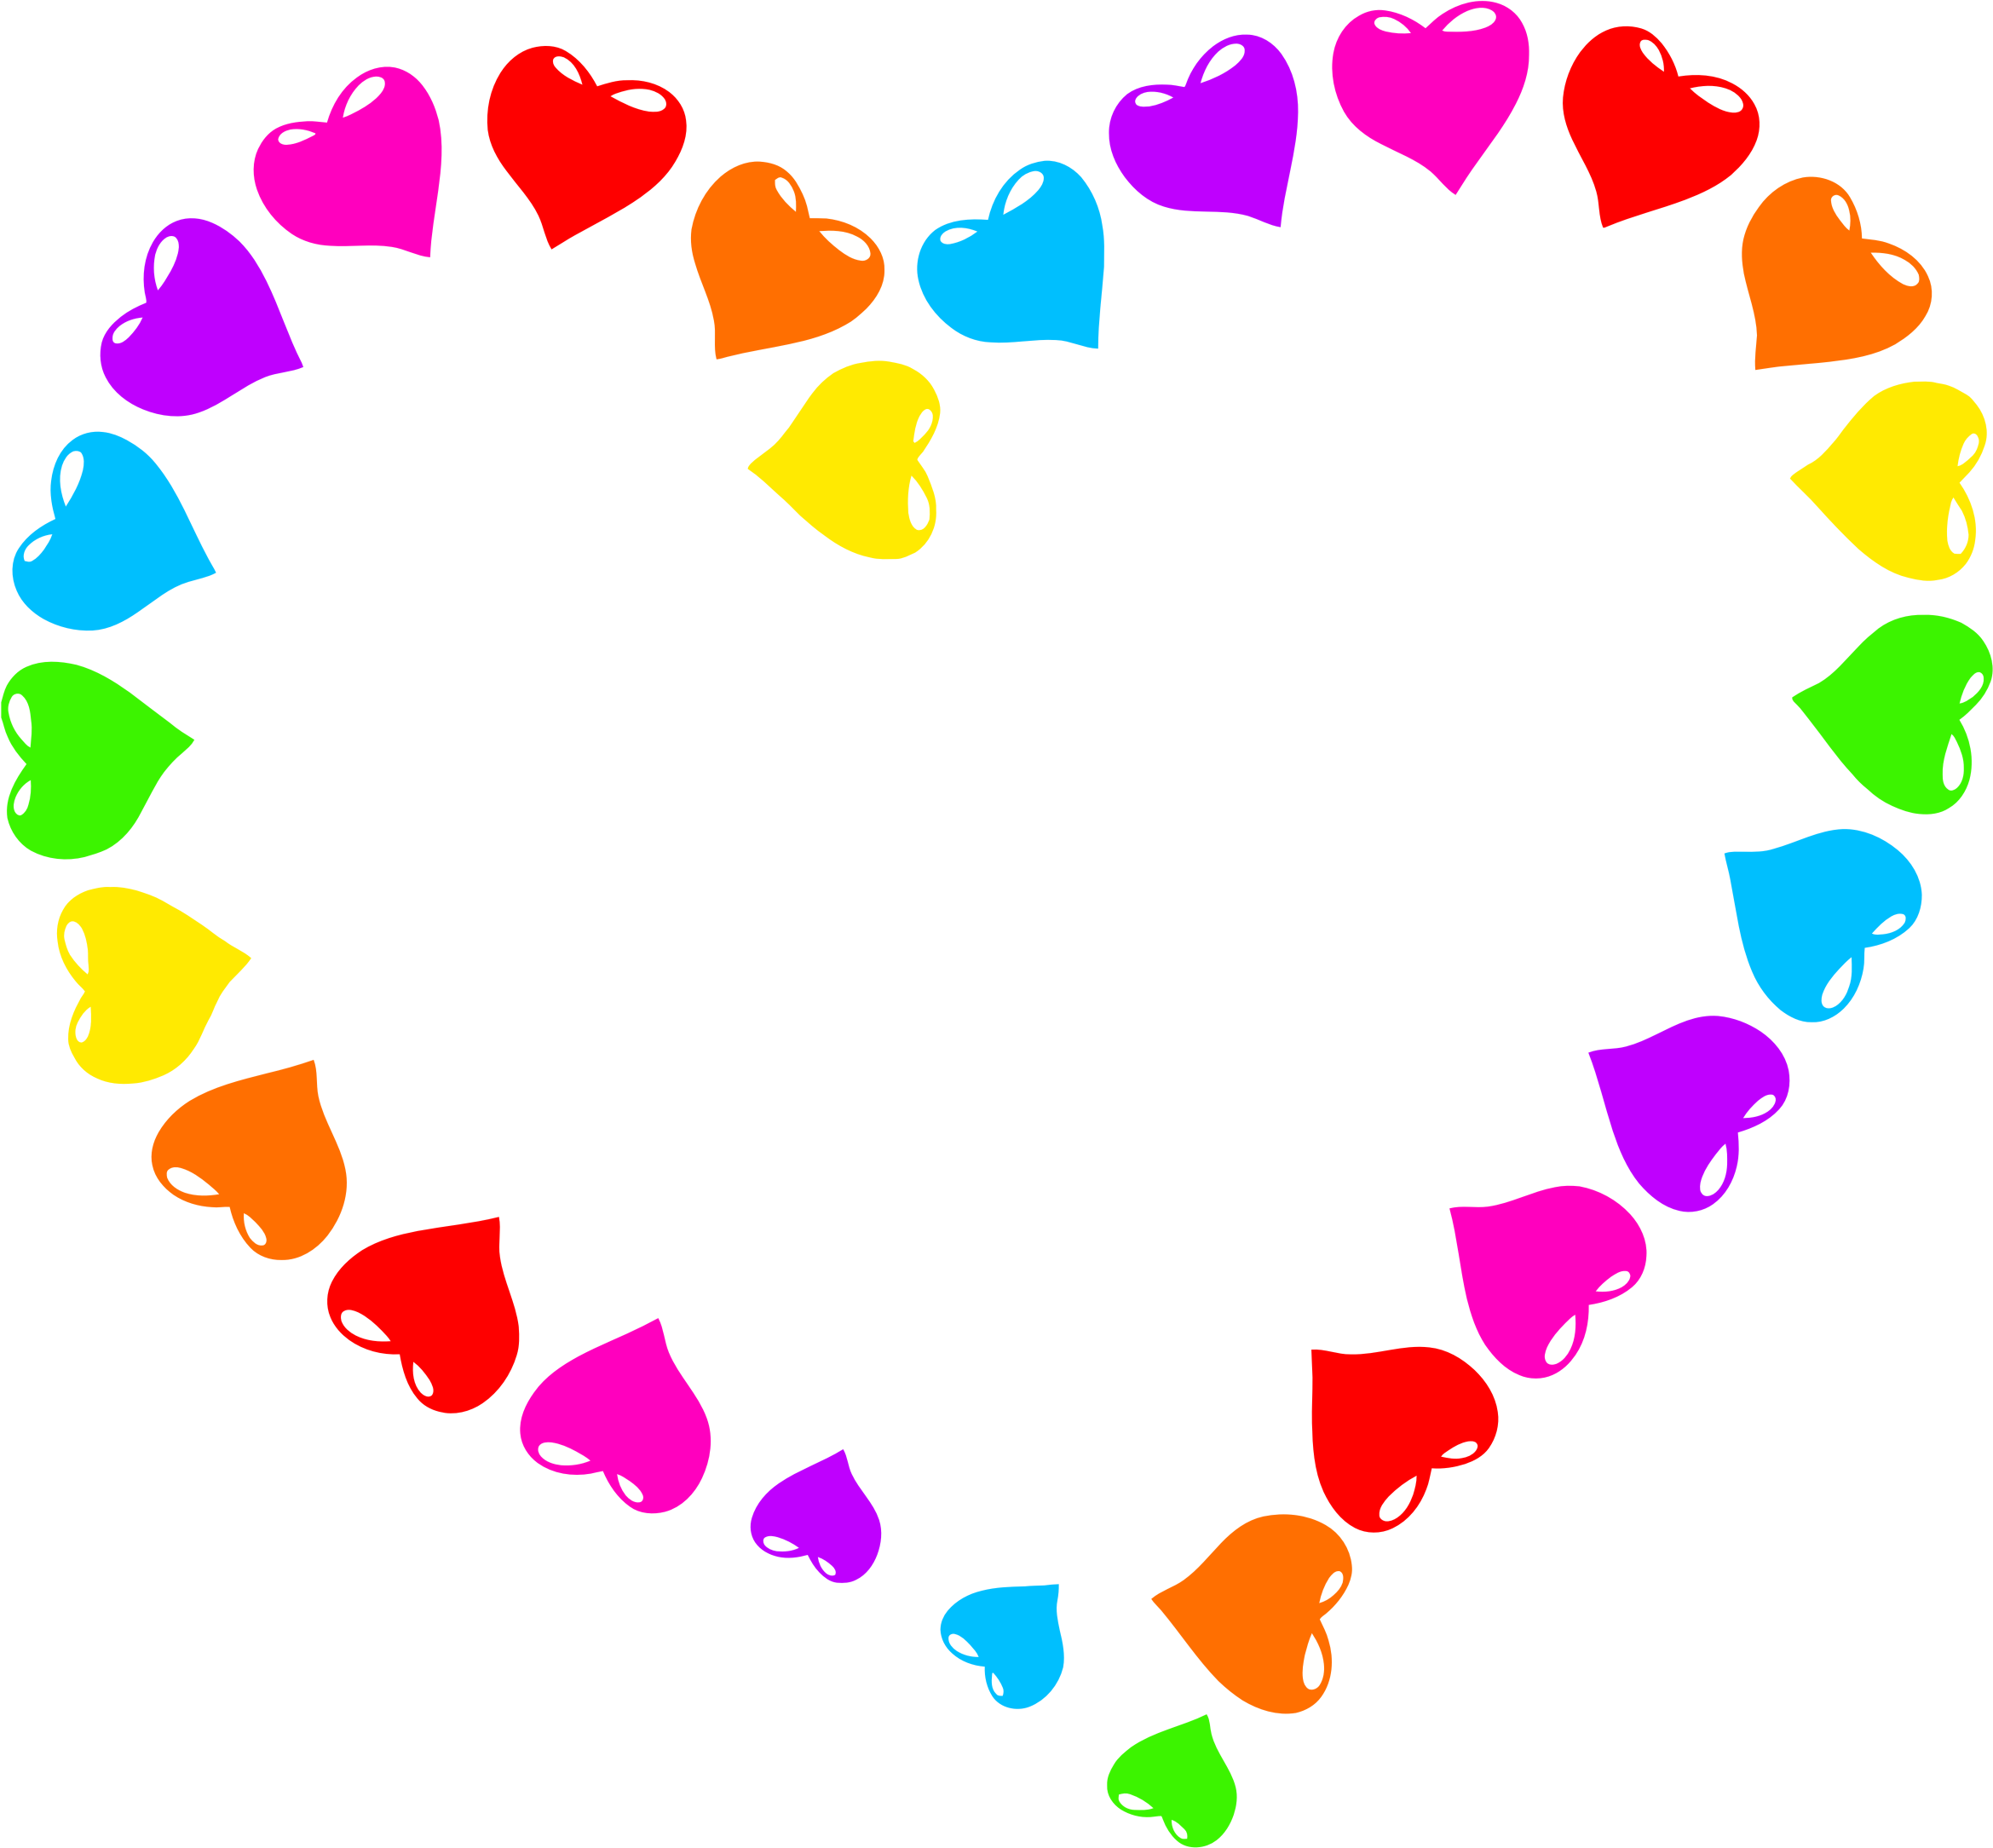 Rainbow hearts png. Clipart heart big image